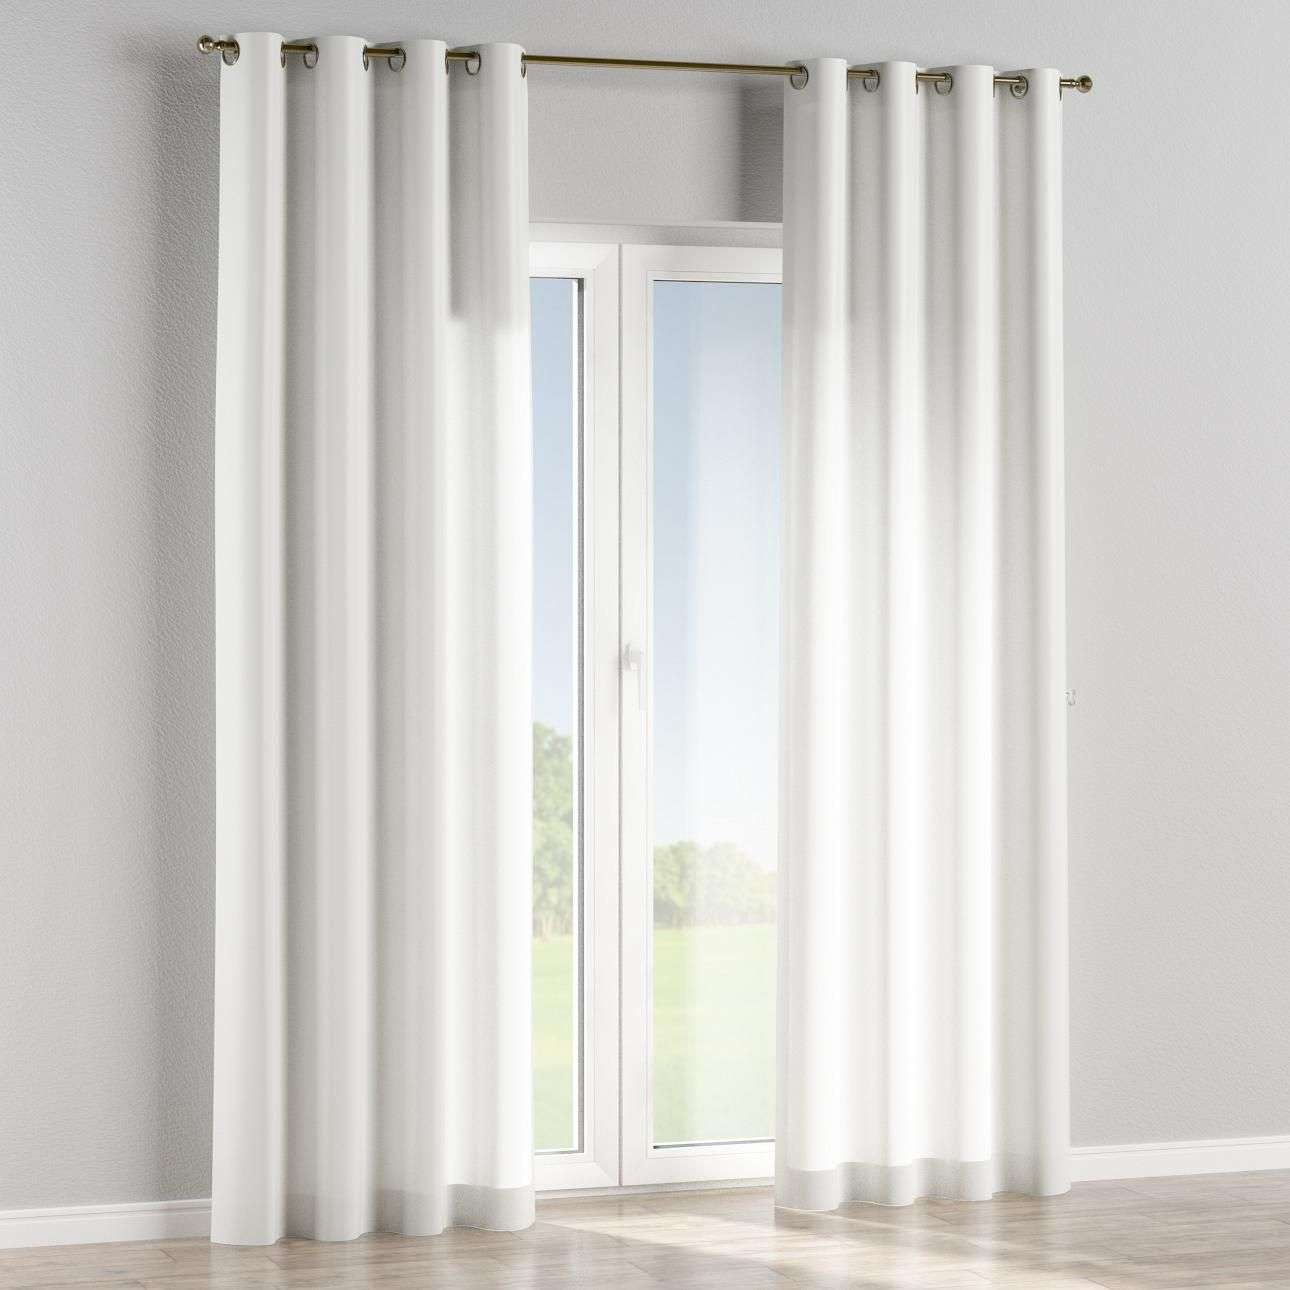 Eyelet curtains in collection Rustica, fabric: 140-58